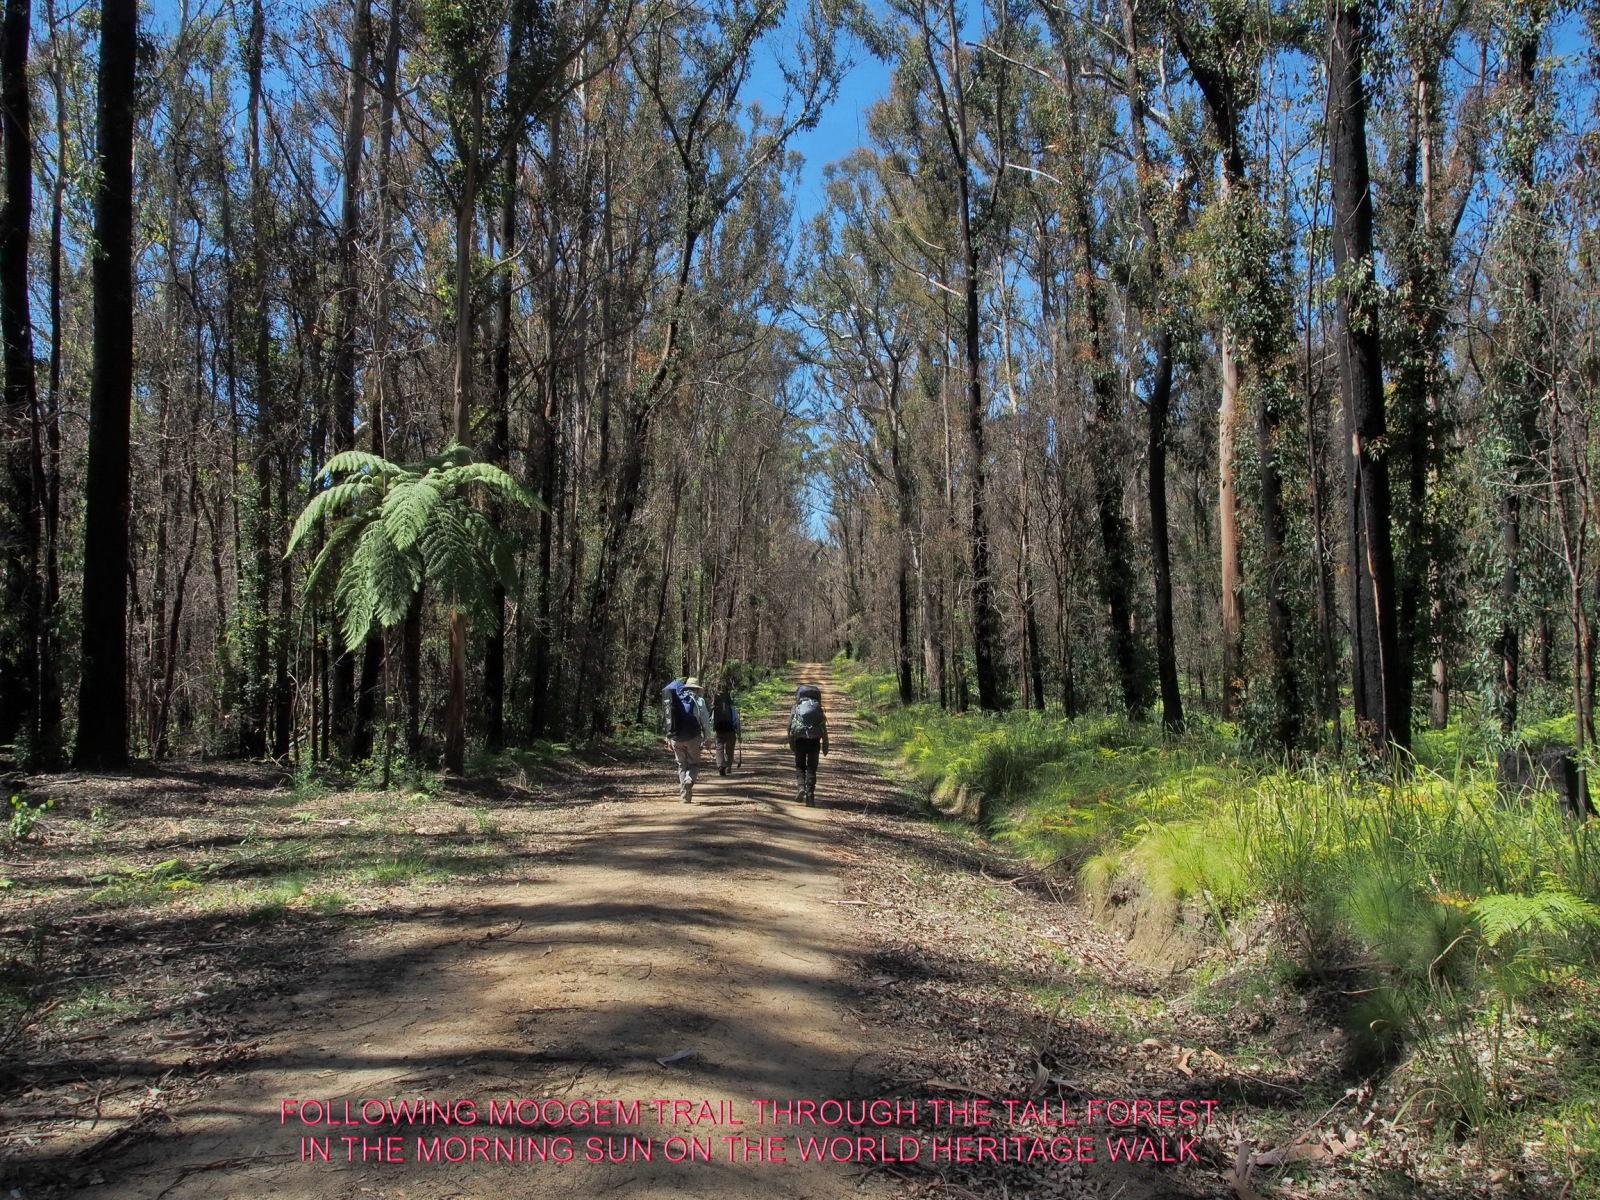 FOLLOWING MOOGEM TRAIL THROUGH THE TALL FOREST IN THE MORNING SUN ON THE WORLD HERITAGE WALK